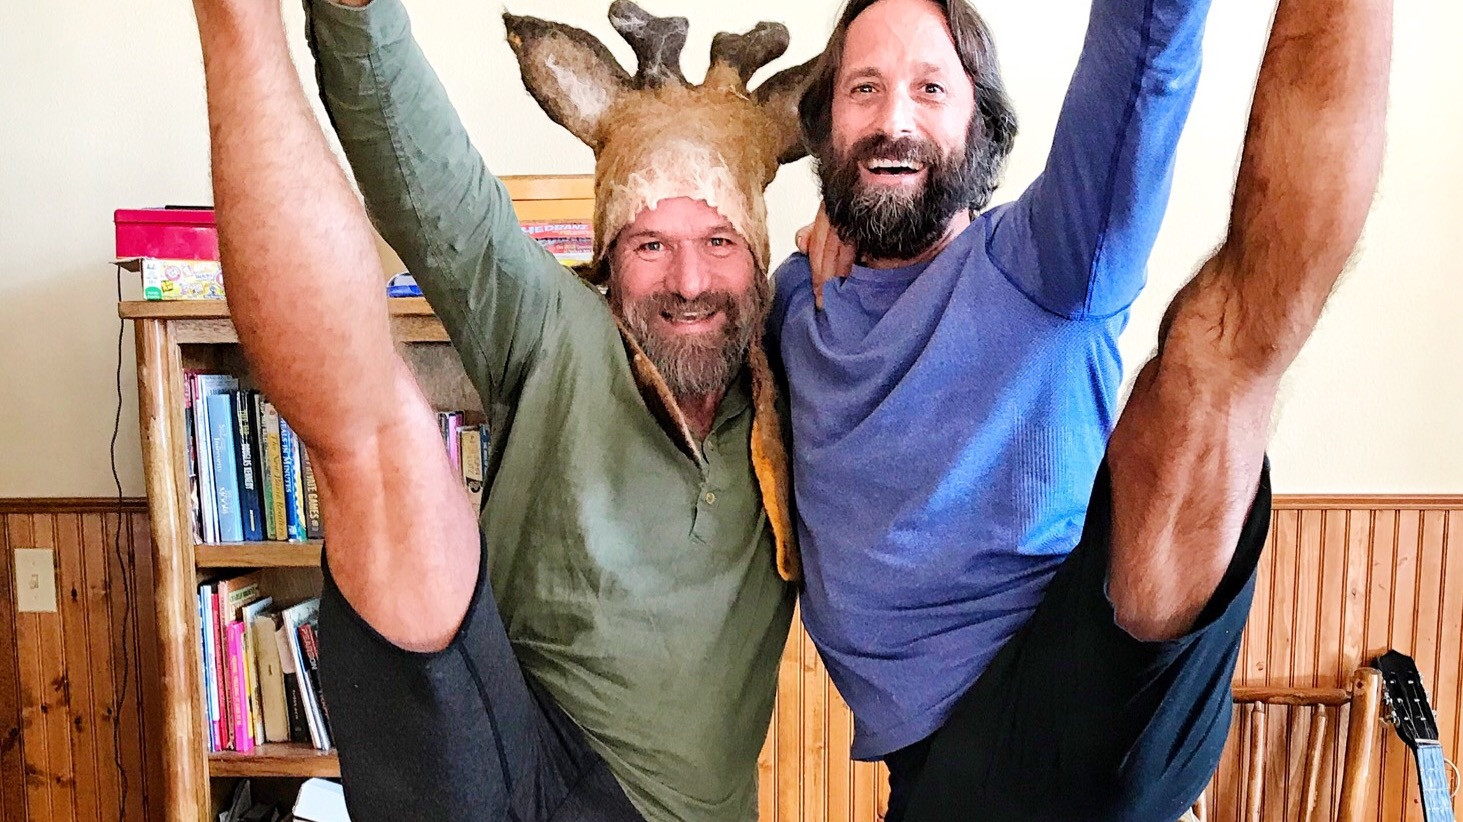 Image 1 of 6 - Experience the Wim Hof Method to get an impression of  at